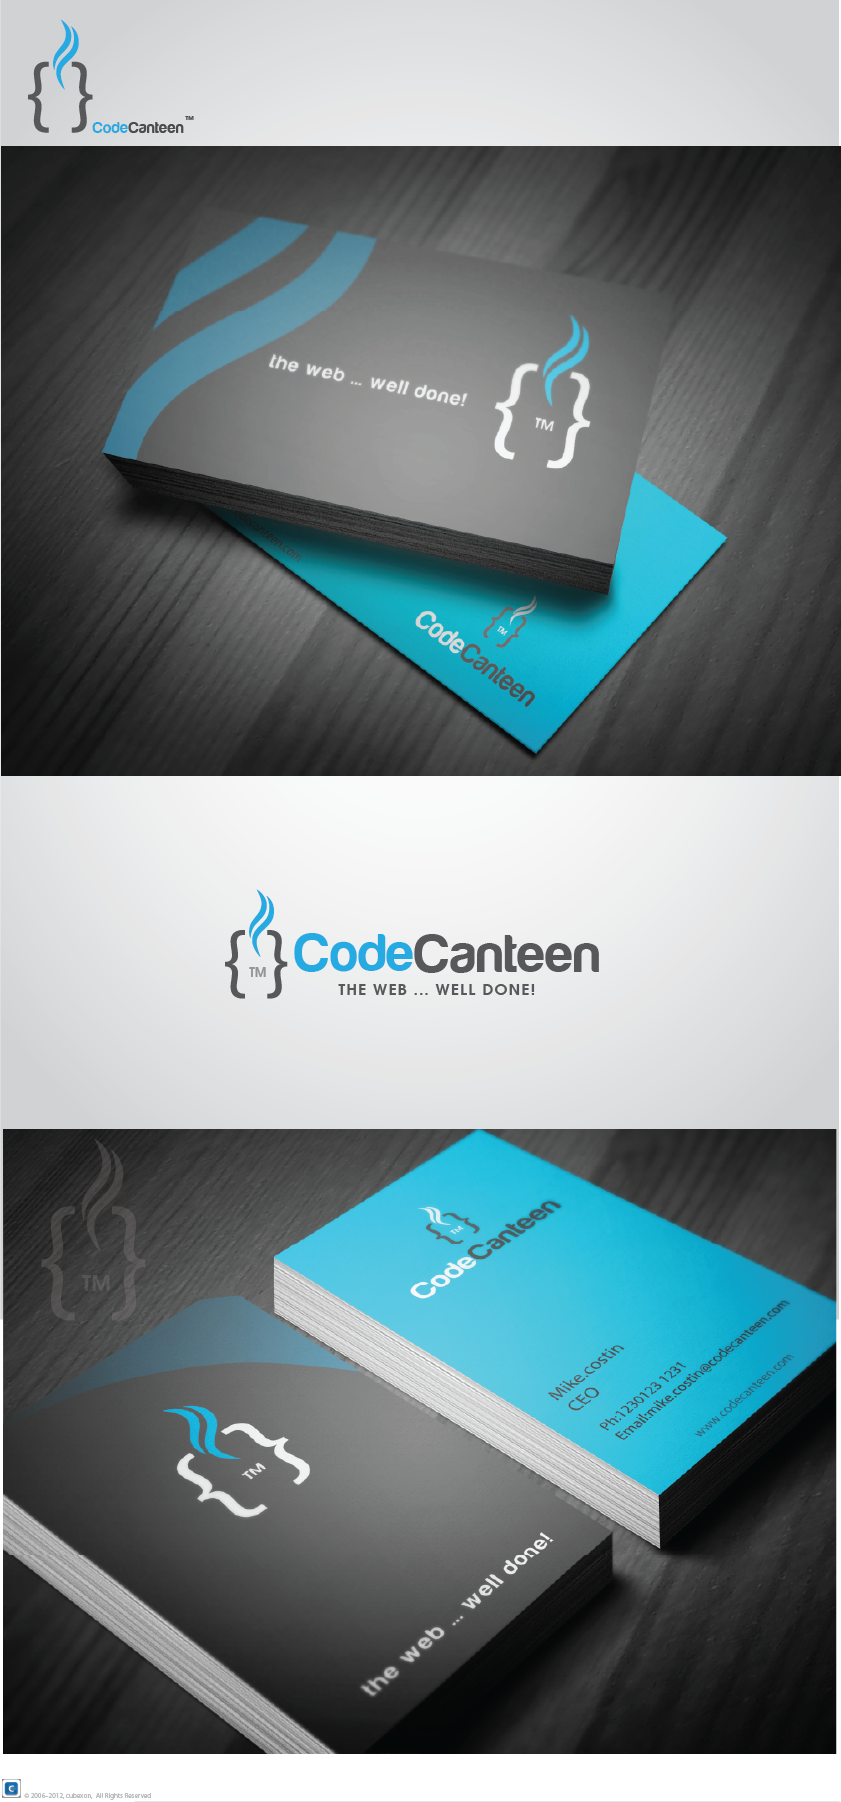 Help CodeCanteen with a new logo